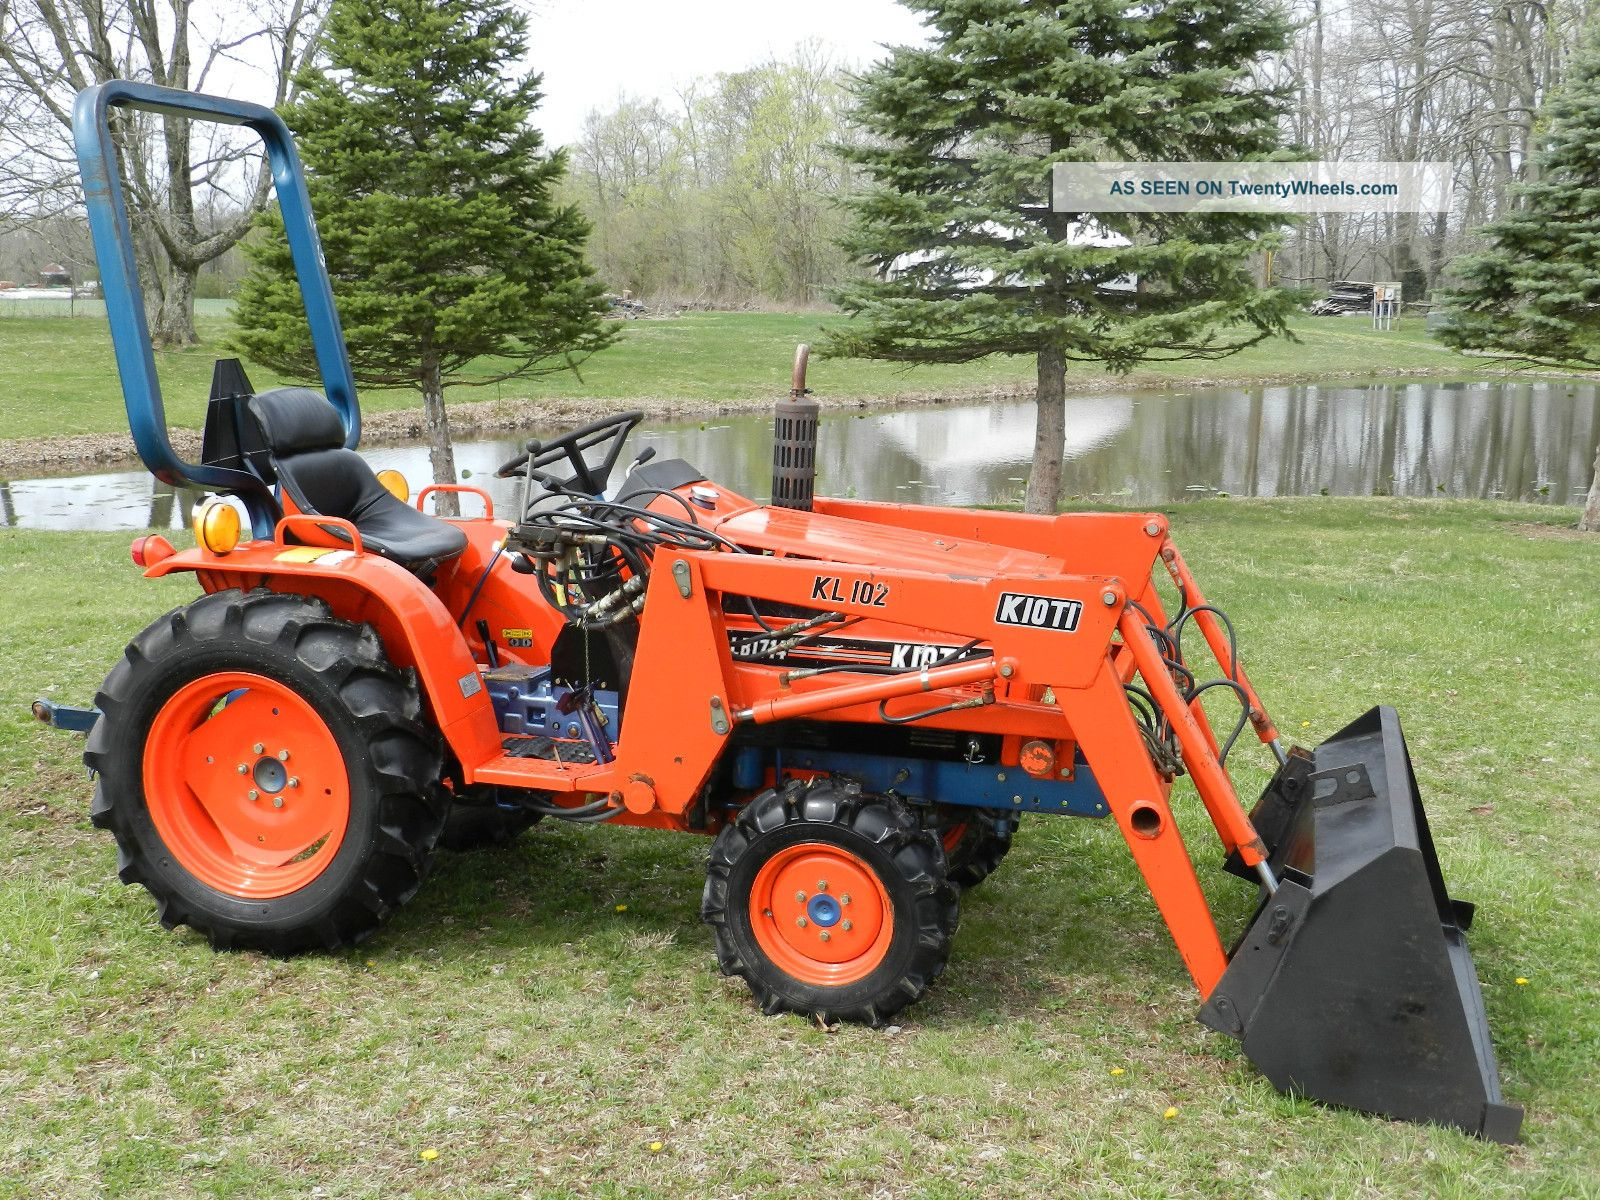 Small Tractors With Loaders : Small tractor with loader bucket foto bugil bokep